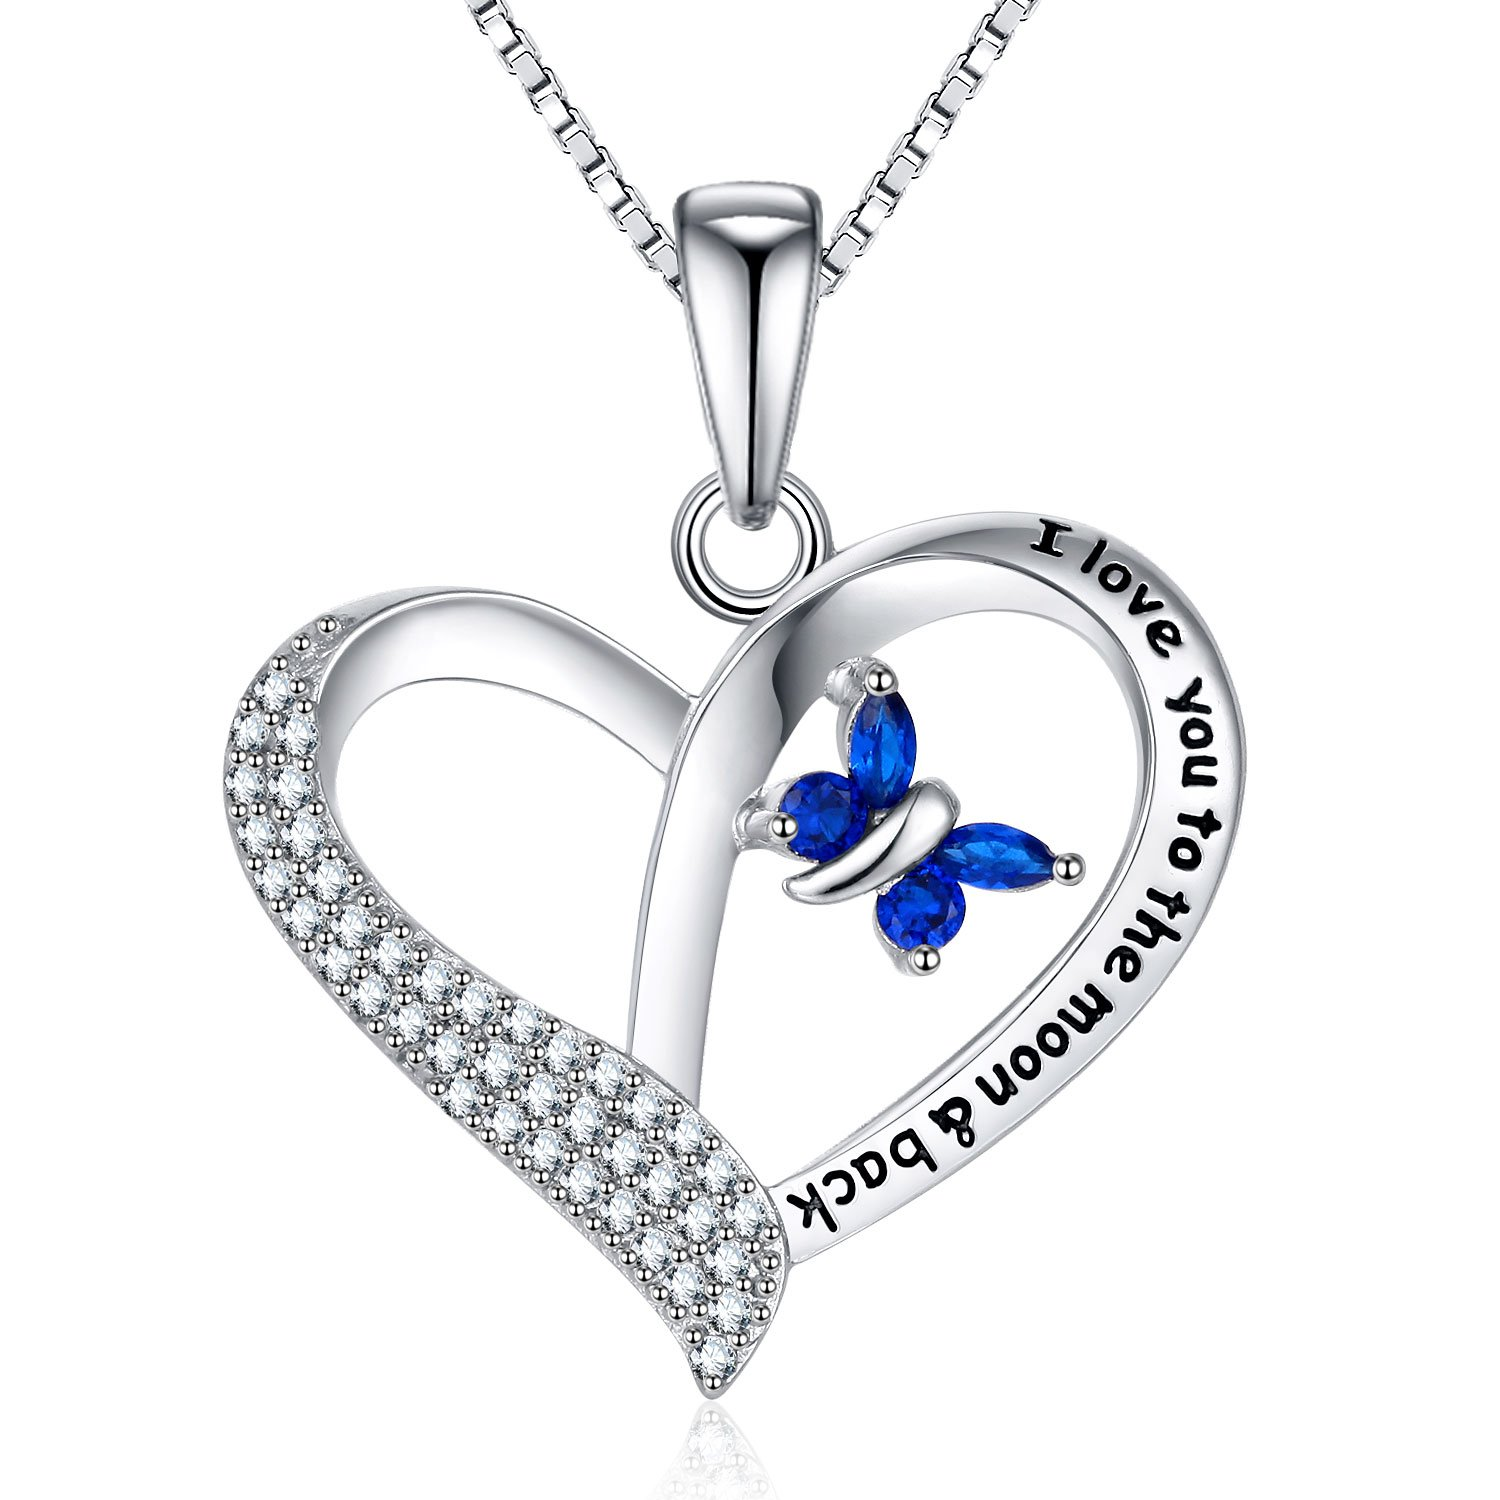 FANCYCD I Love You to the Moon and Back Love Heart Necklace, 18'', Jewelry for Women & Girls, Special Gifts for Girlfriend, Wife, Sister, Aunt, Grandma, Mom.